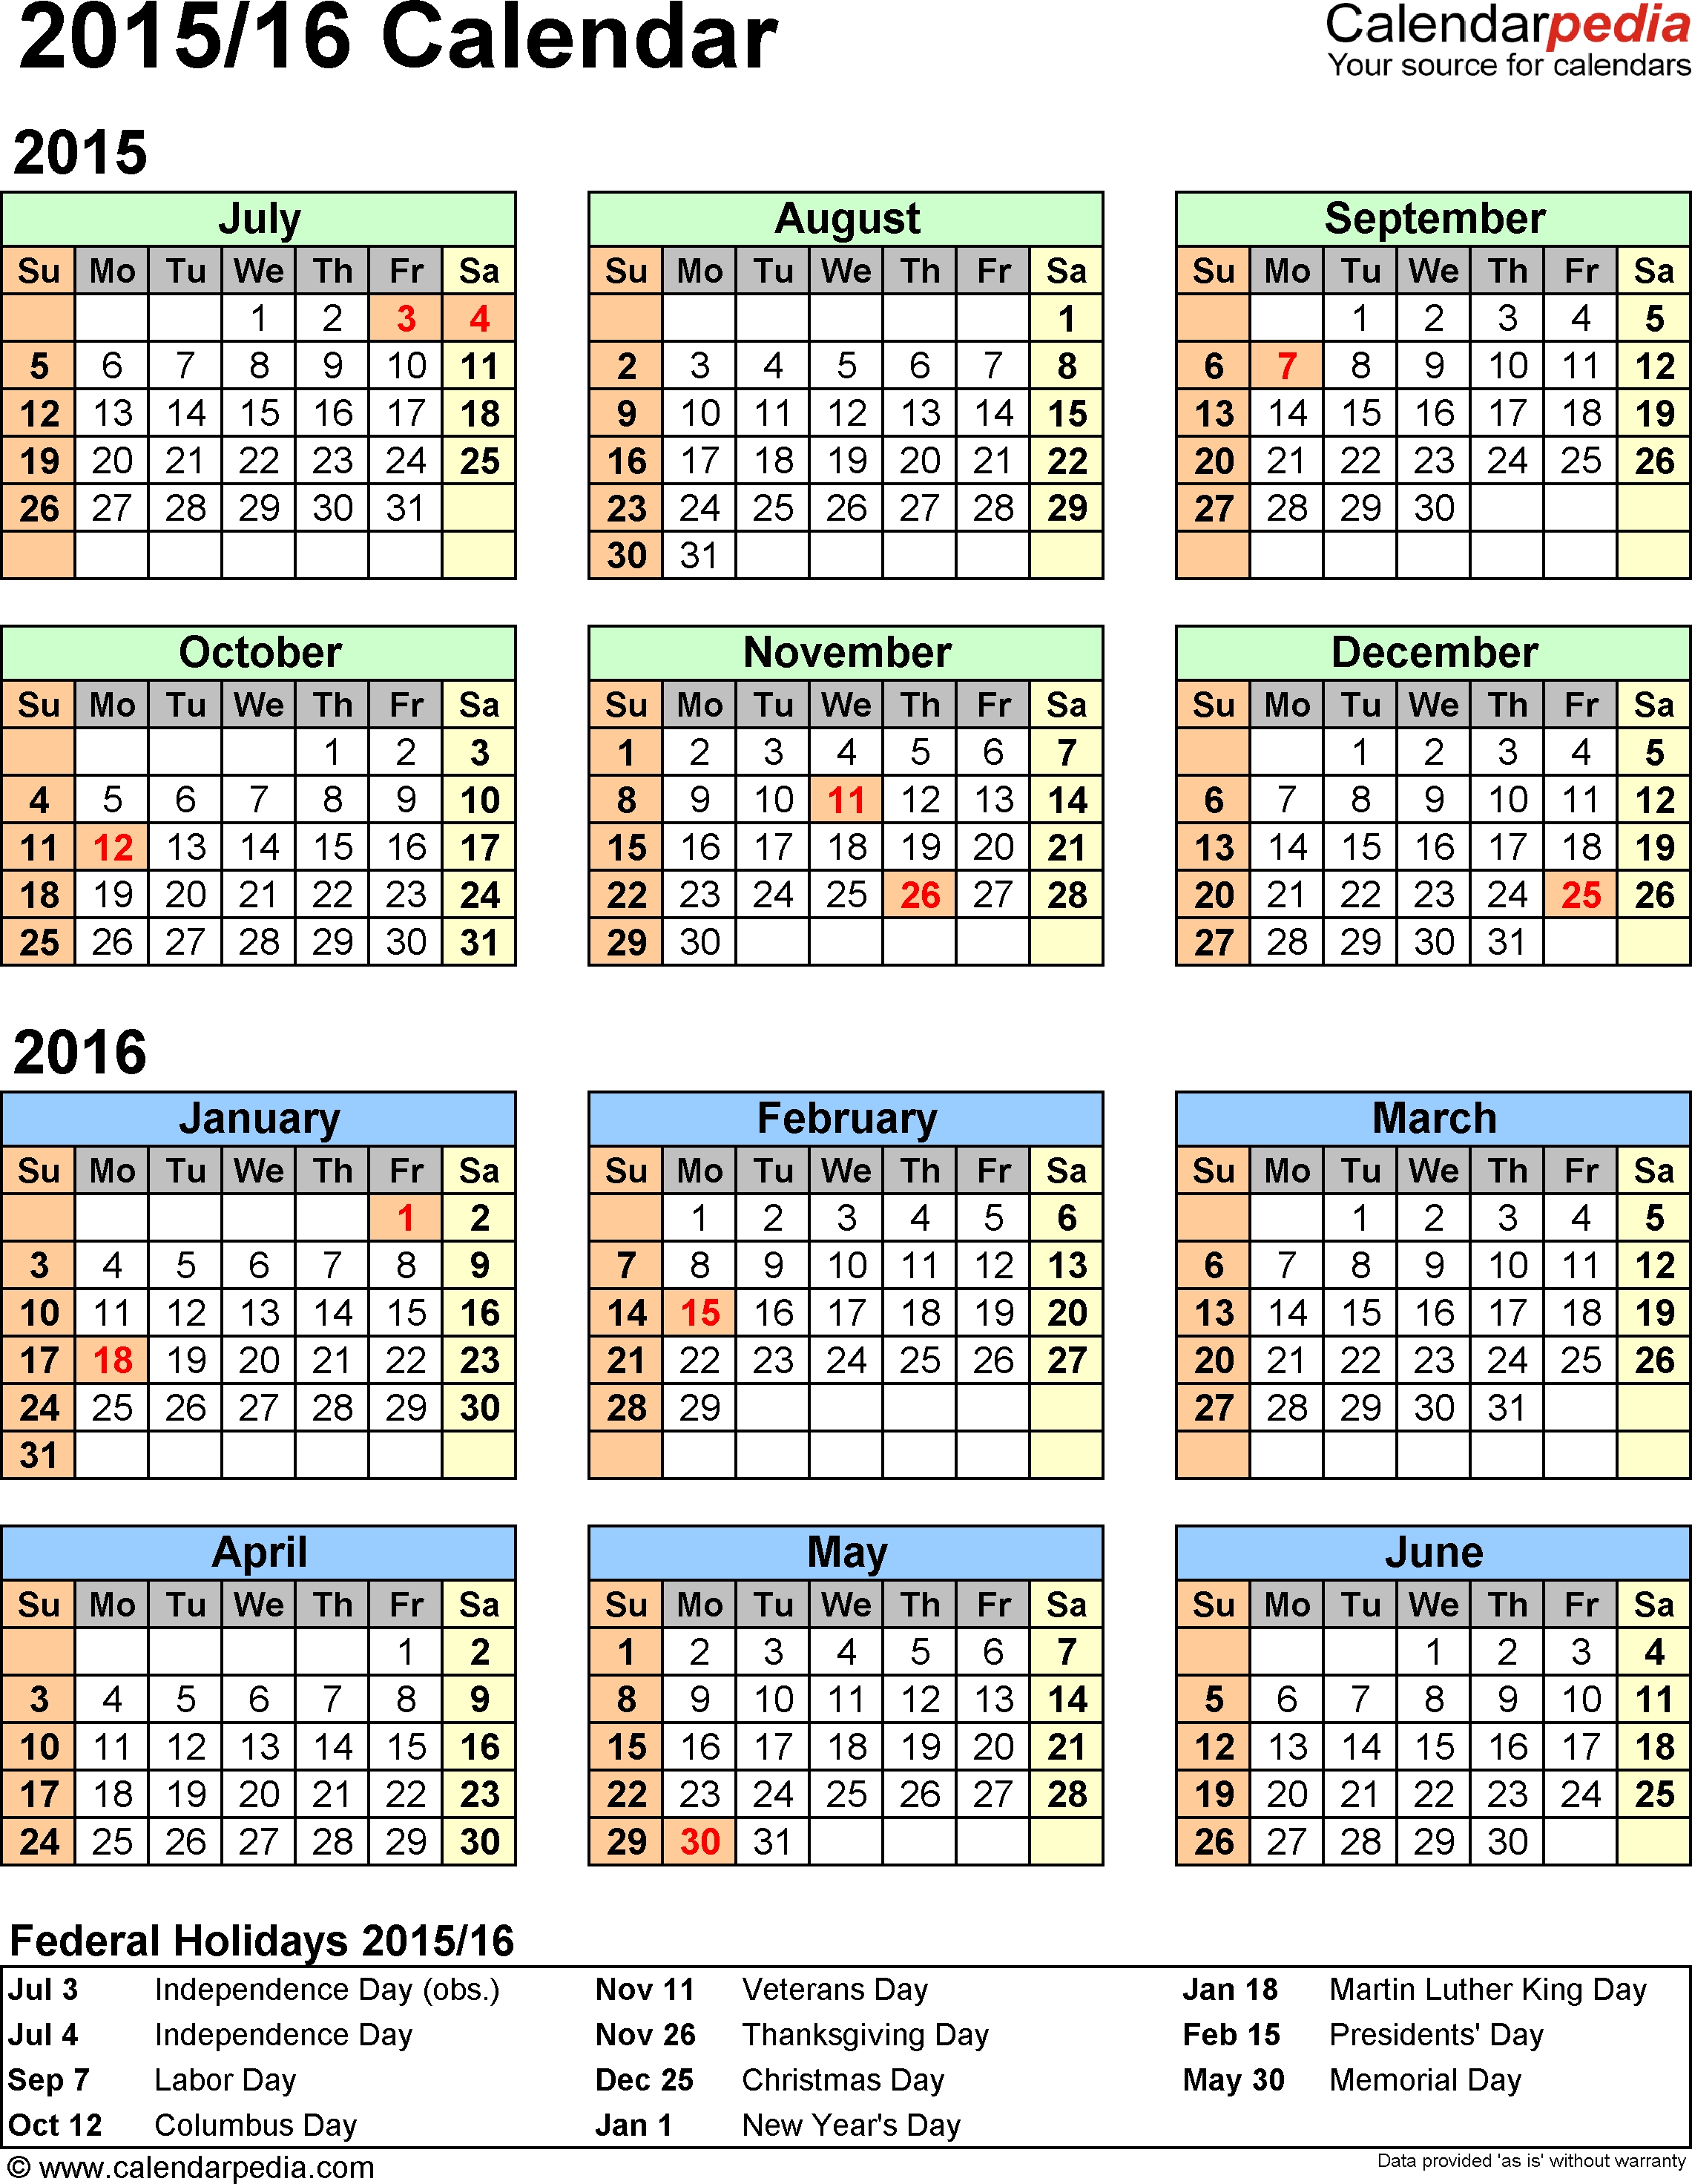 Template 2: Word Template For Split Year Calendar 2015/2016  18-19 Financial Year Dates